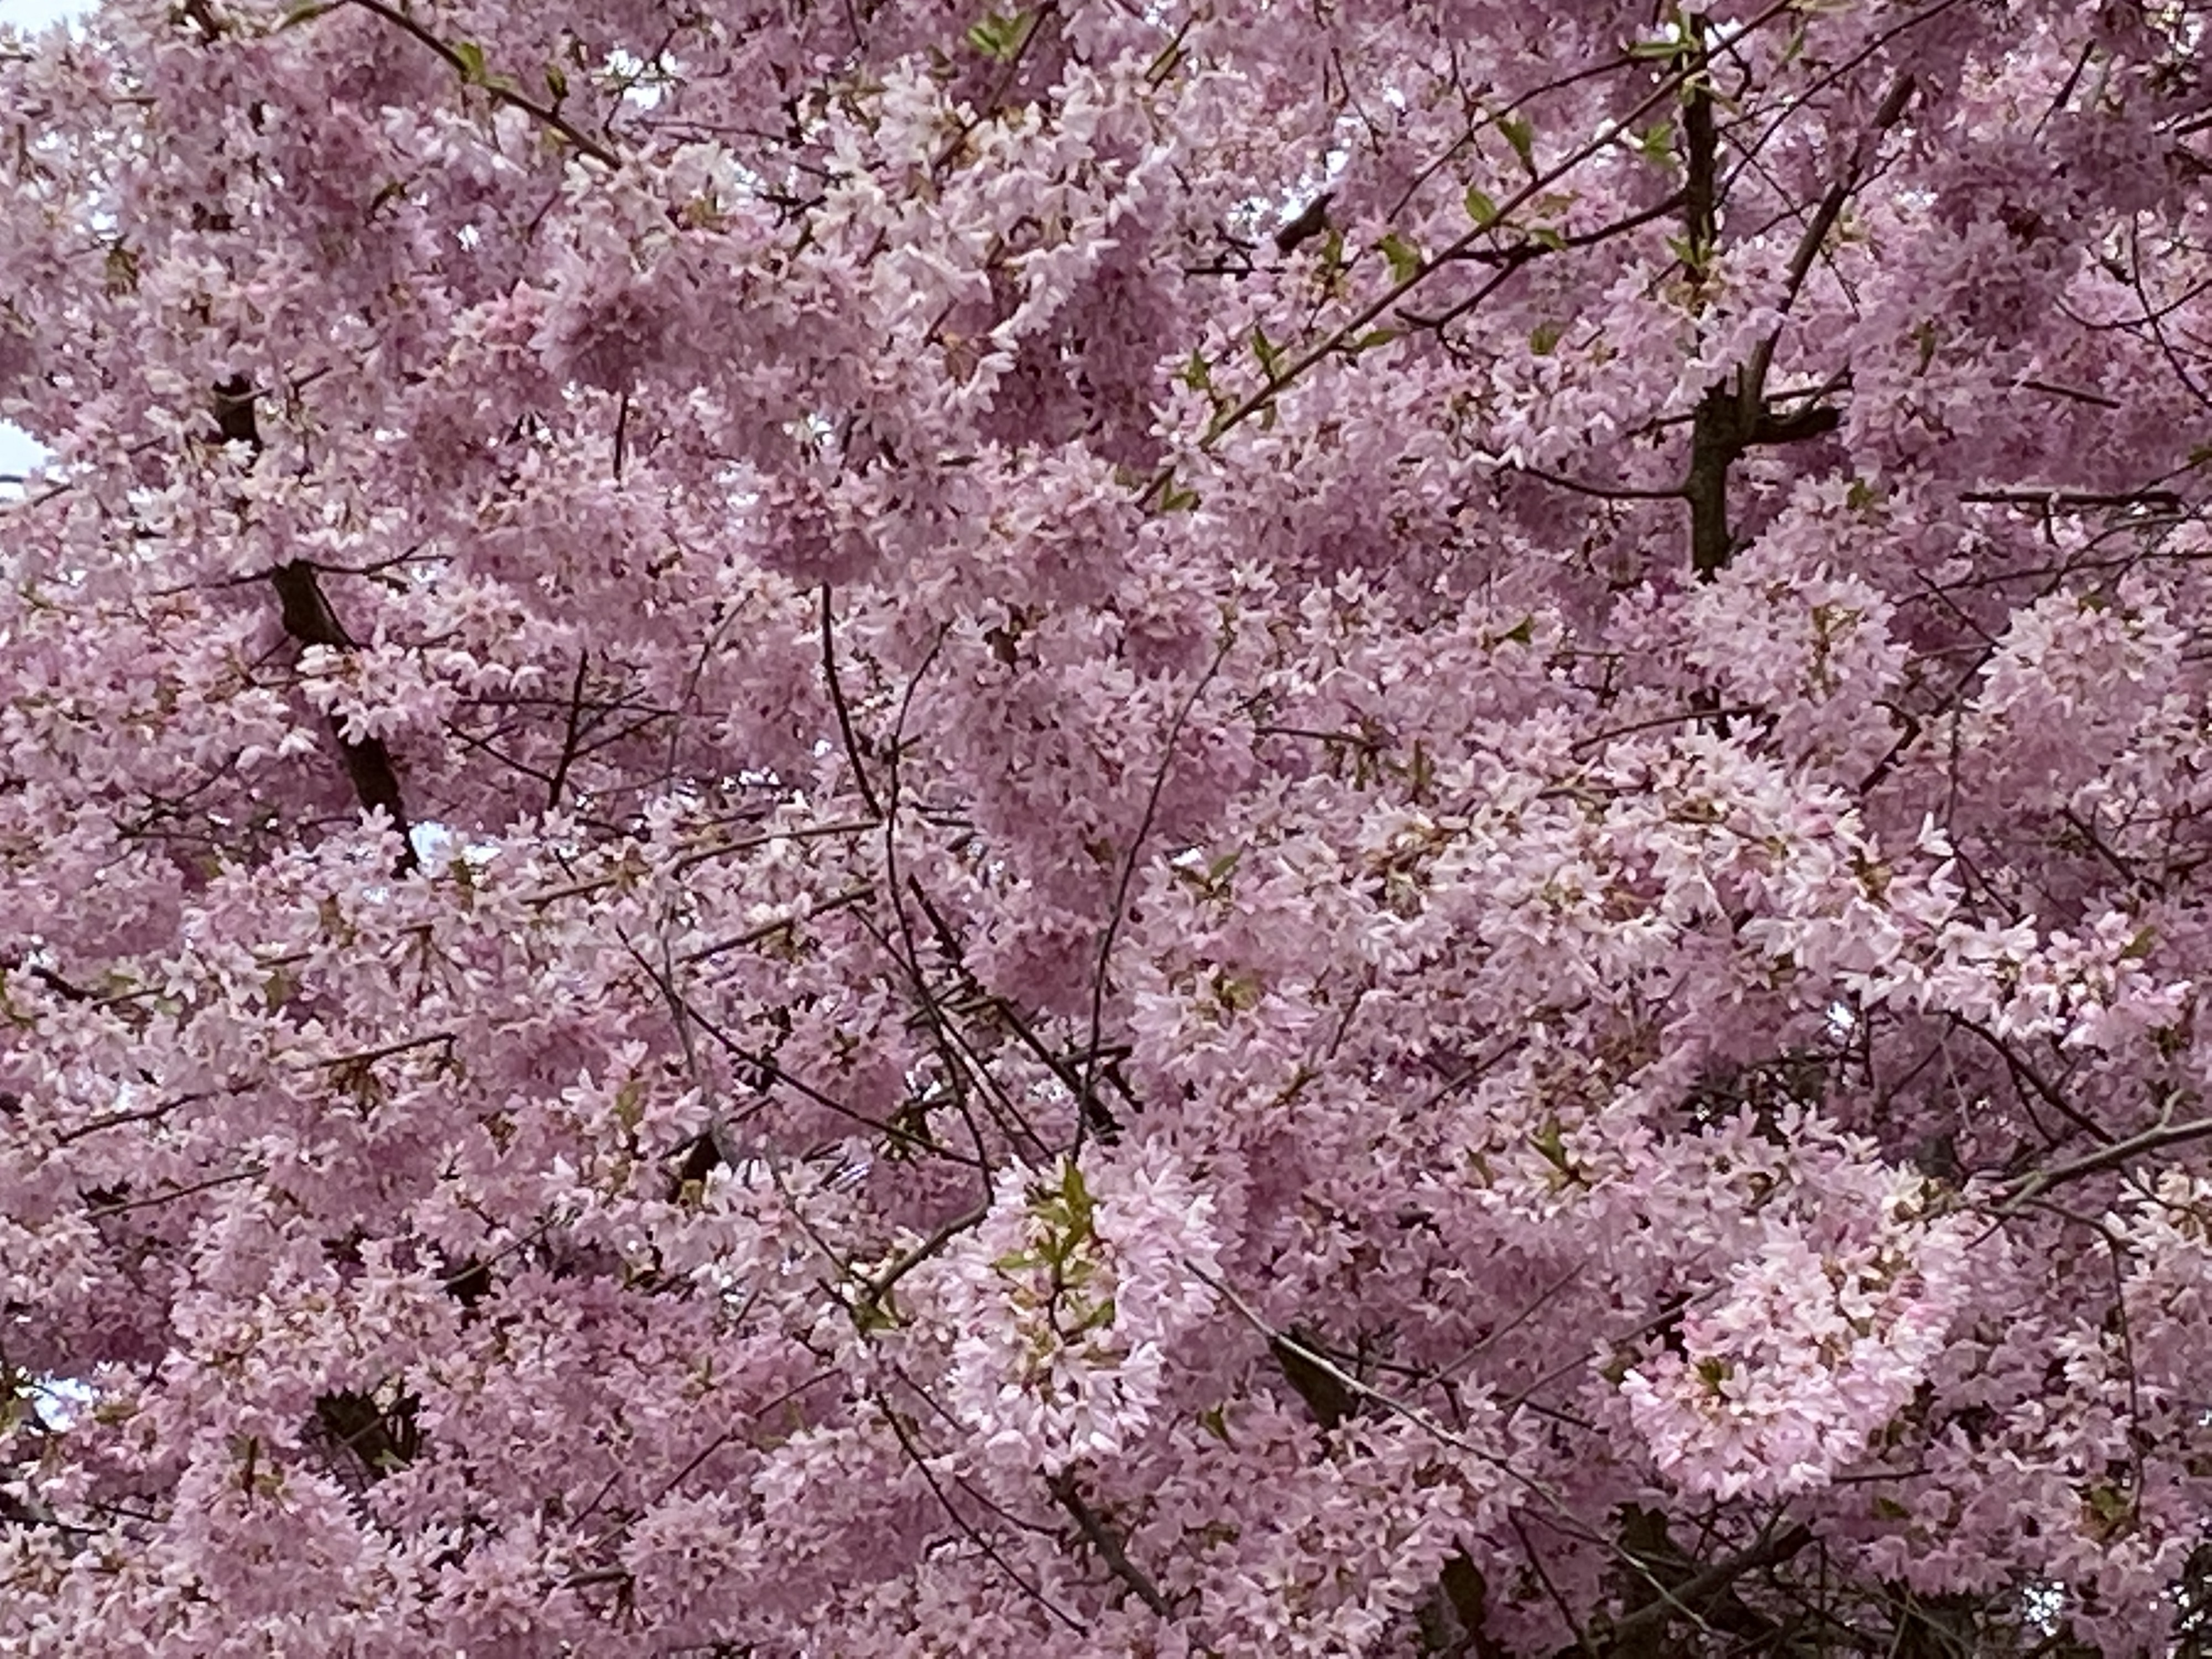 pink blossoms of a cherry tree